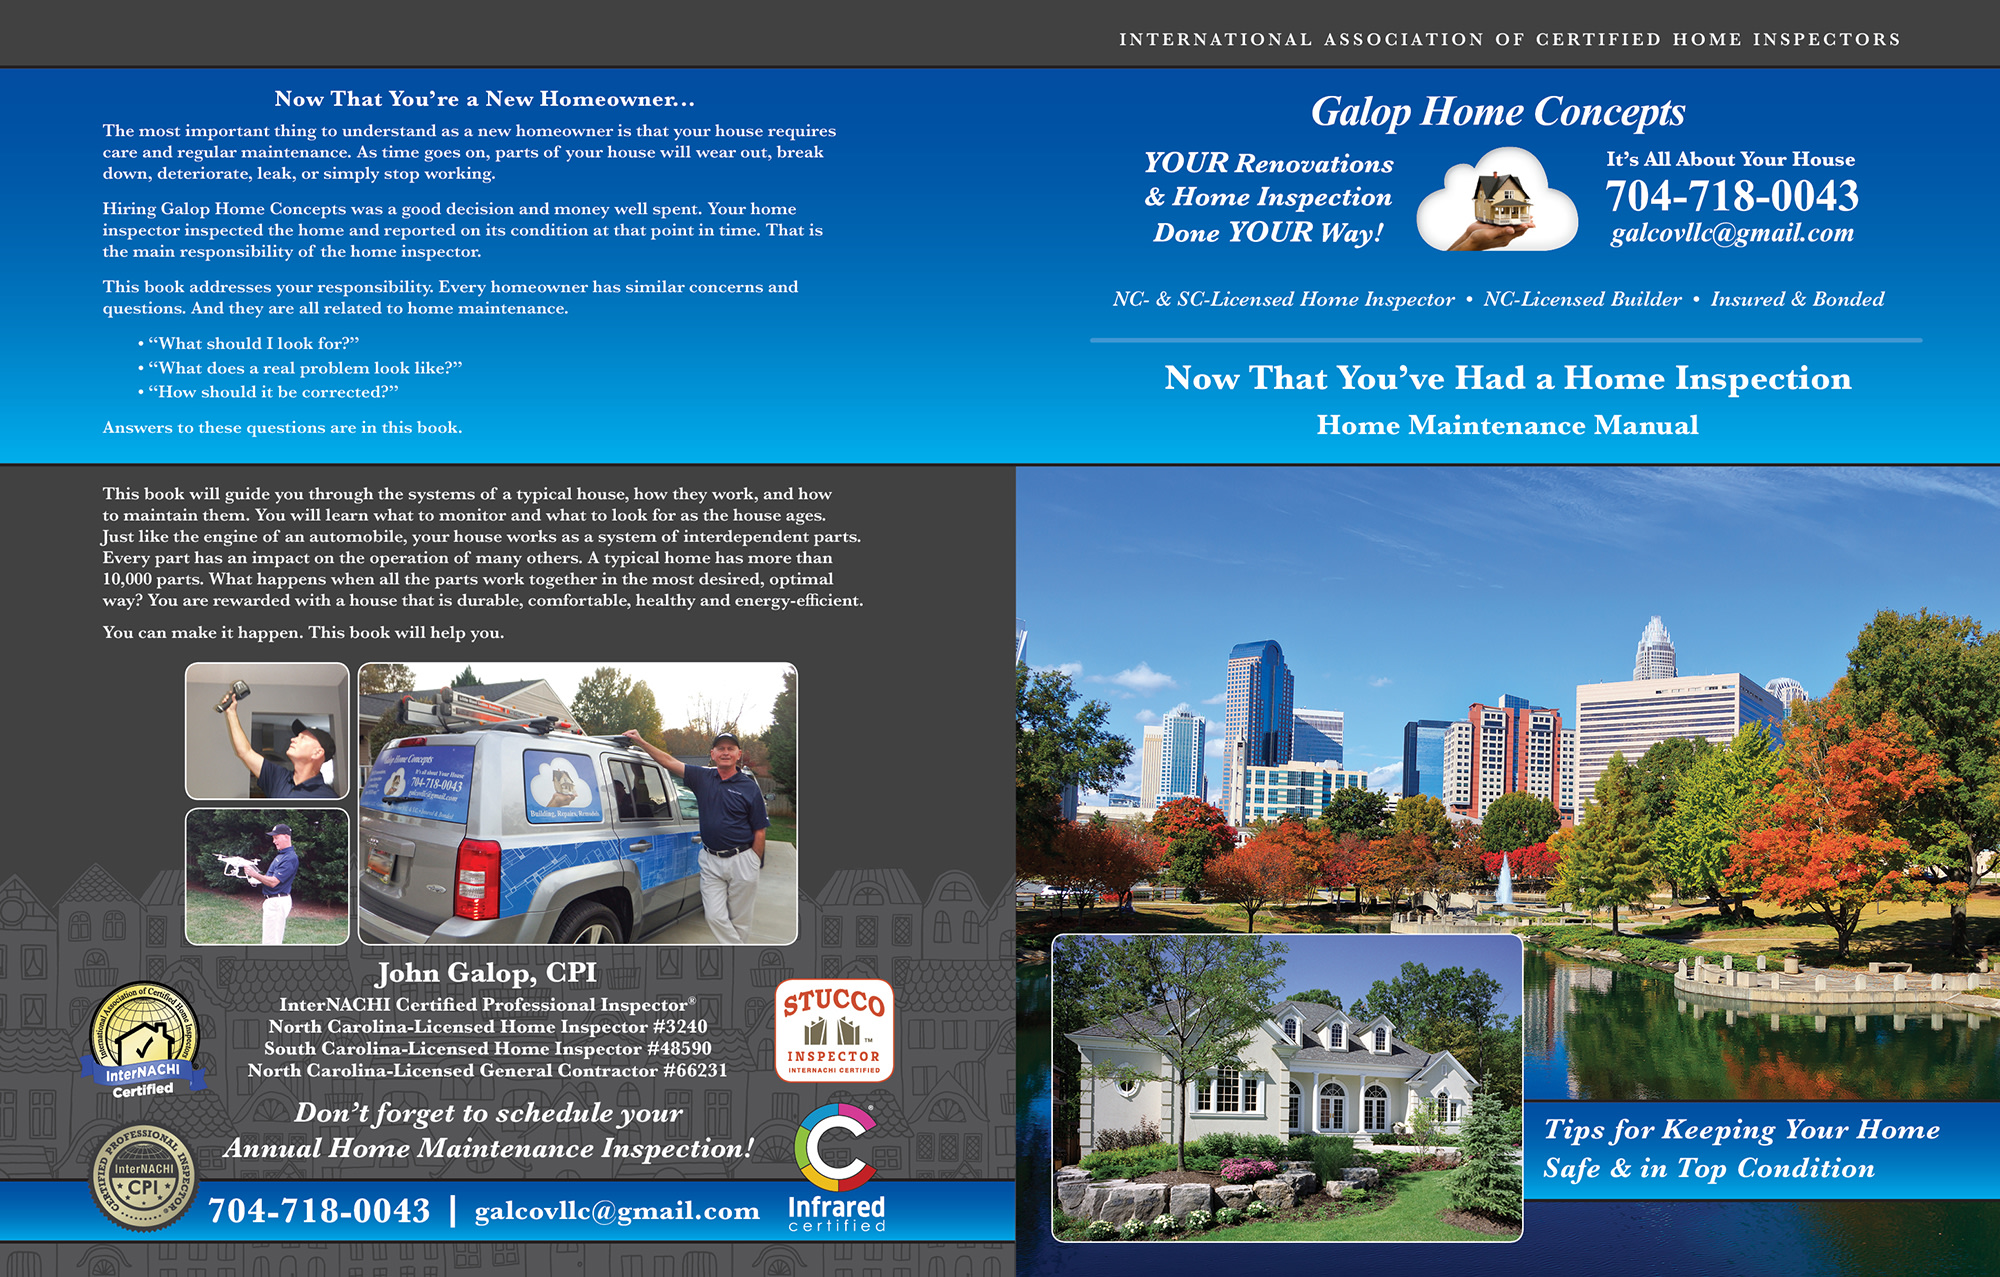 Custom Home Maintenance Book for Galop Home Concepts.